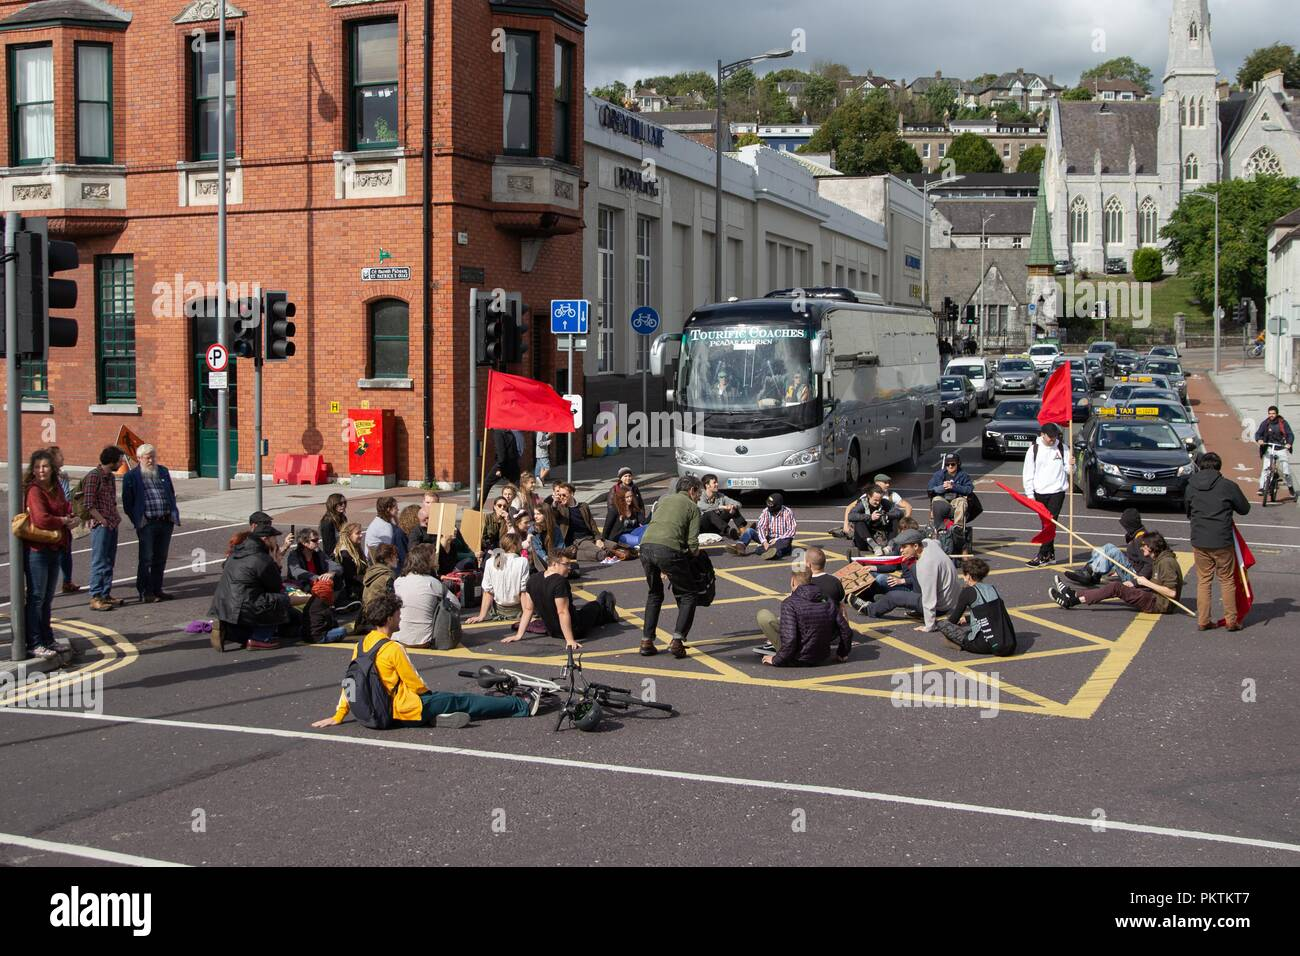 Cork, Ireland. 15th Sept, 2018. Sit-In by Connelly Youth Movement, Cork City. Today at 2:30 The Connonelly Youth Movement staged a protest on the Brian Bru Bridge which brought traffic to a standstill. This sit in was staged to protest the eviction of the people of 'Tentsville' located on Patricks Quay. Credit: Damian Coleman/Alamy Live News. - Stock Image